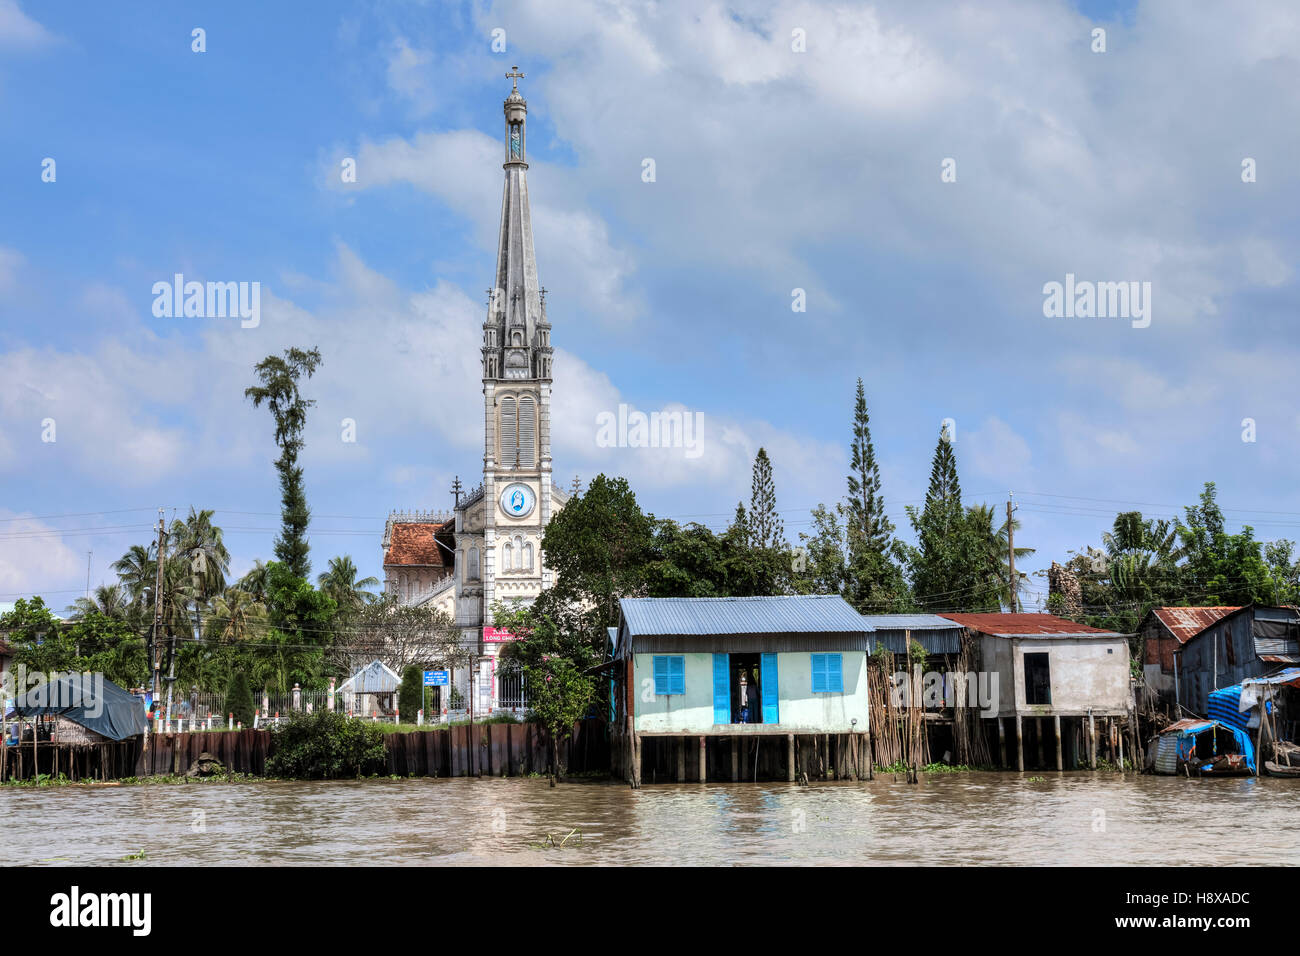 Life along the Mekong River in Cai Be, Mekong Delta, Vietnam, Asia - Stock Image